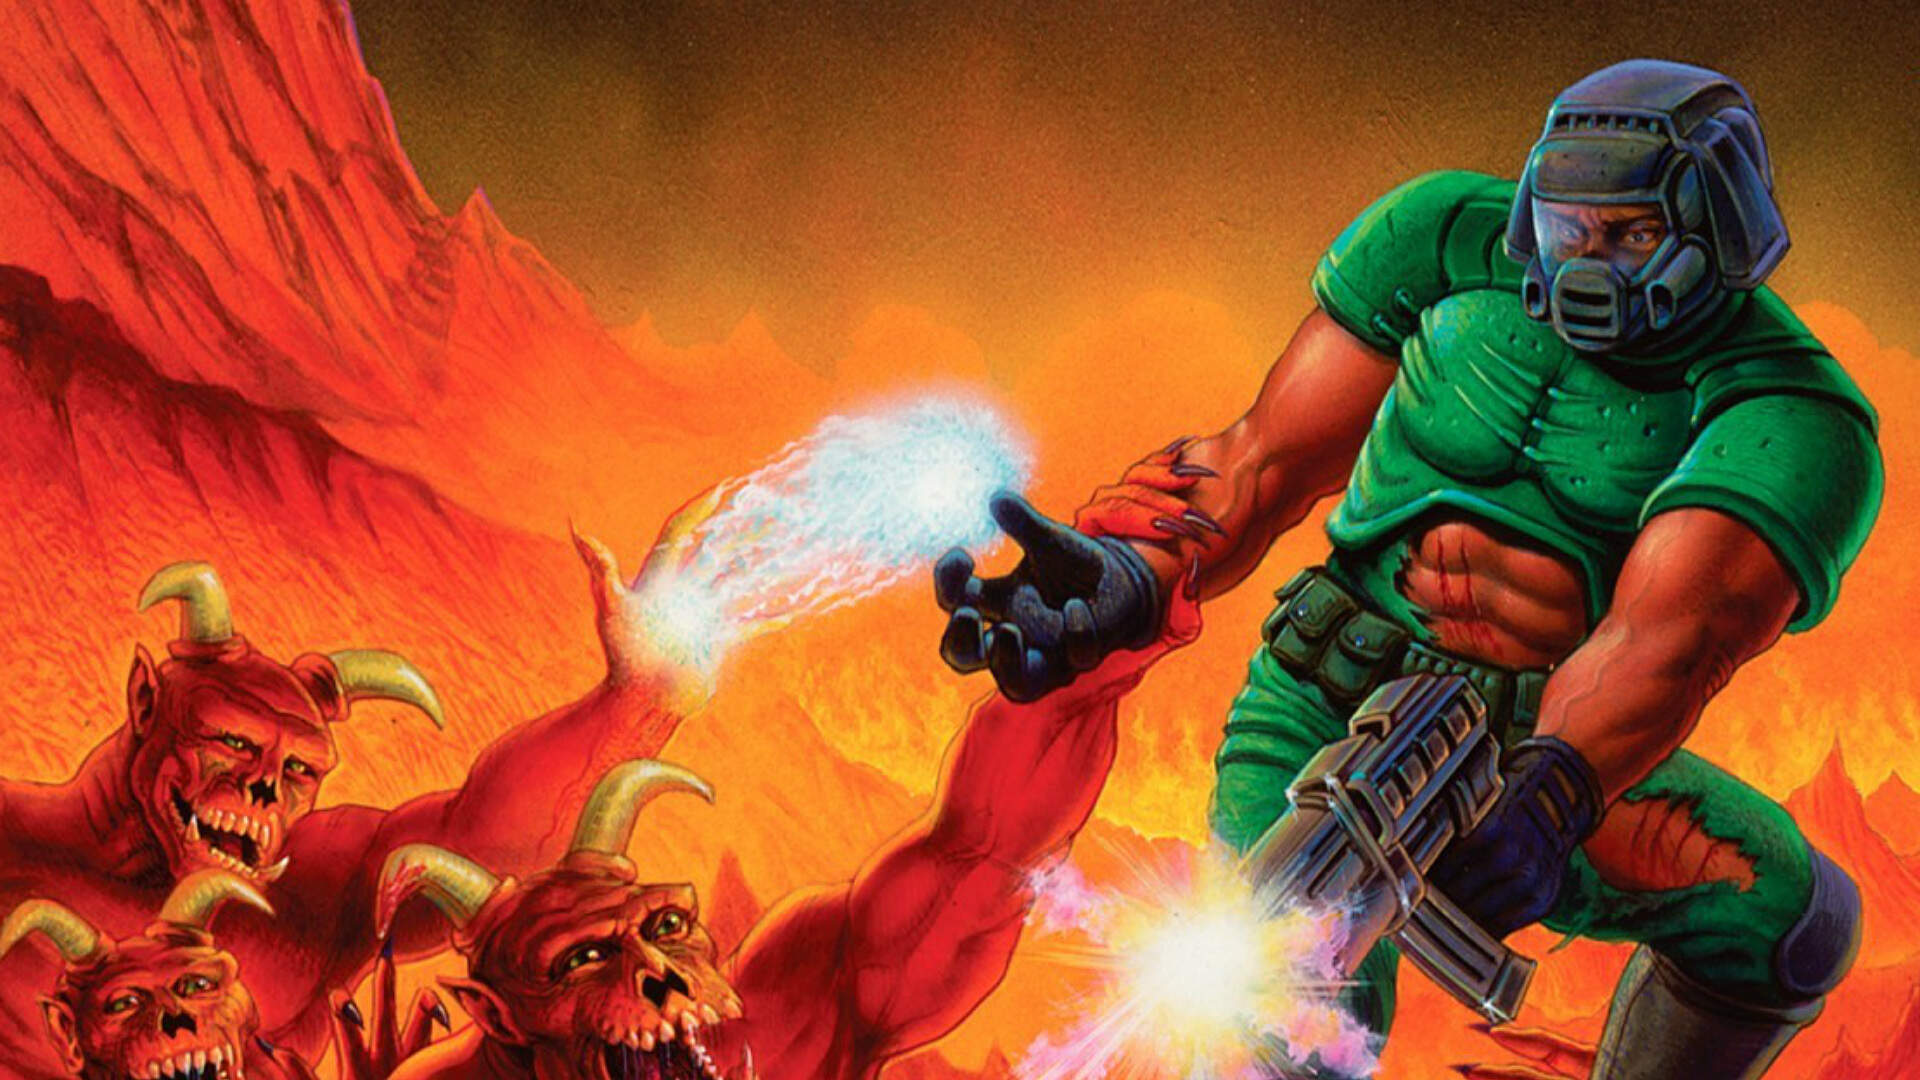 Doom and Doom 2 on Console Are Getting Free Classic Map Pack Add-Ons